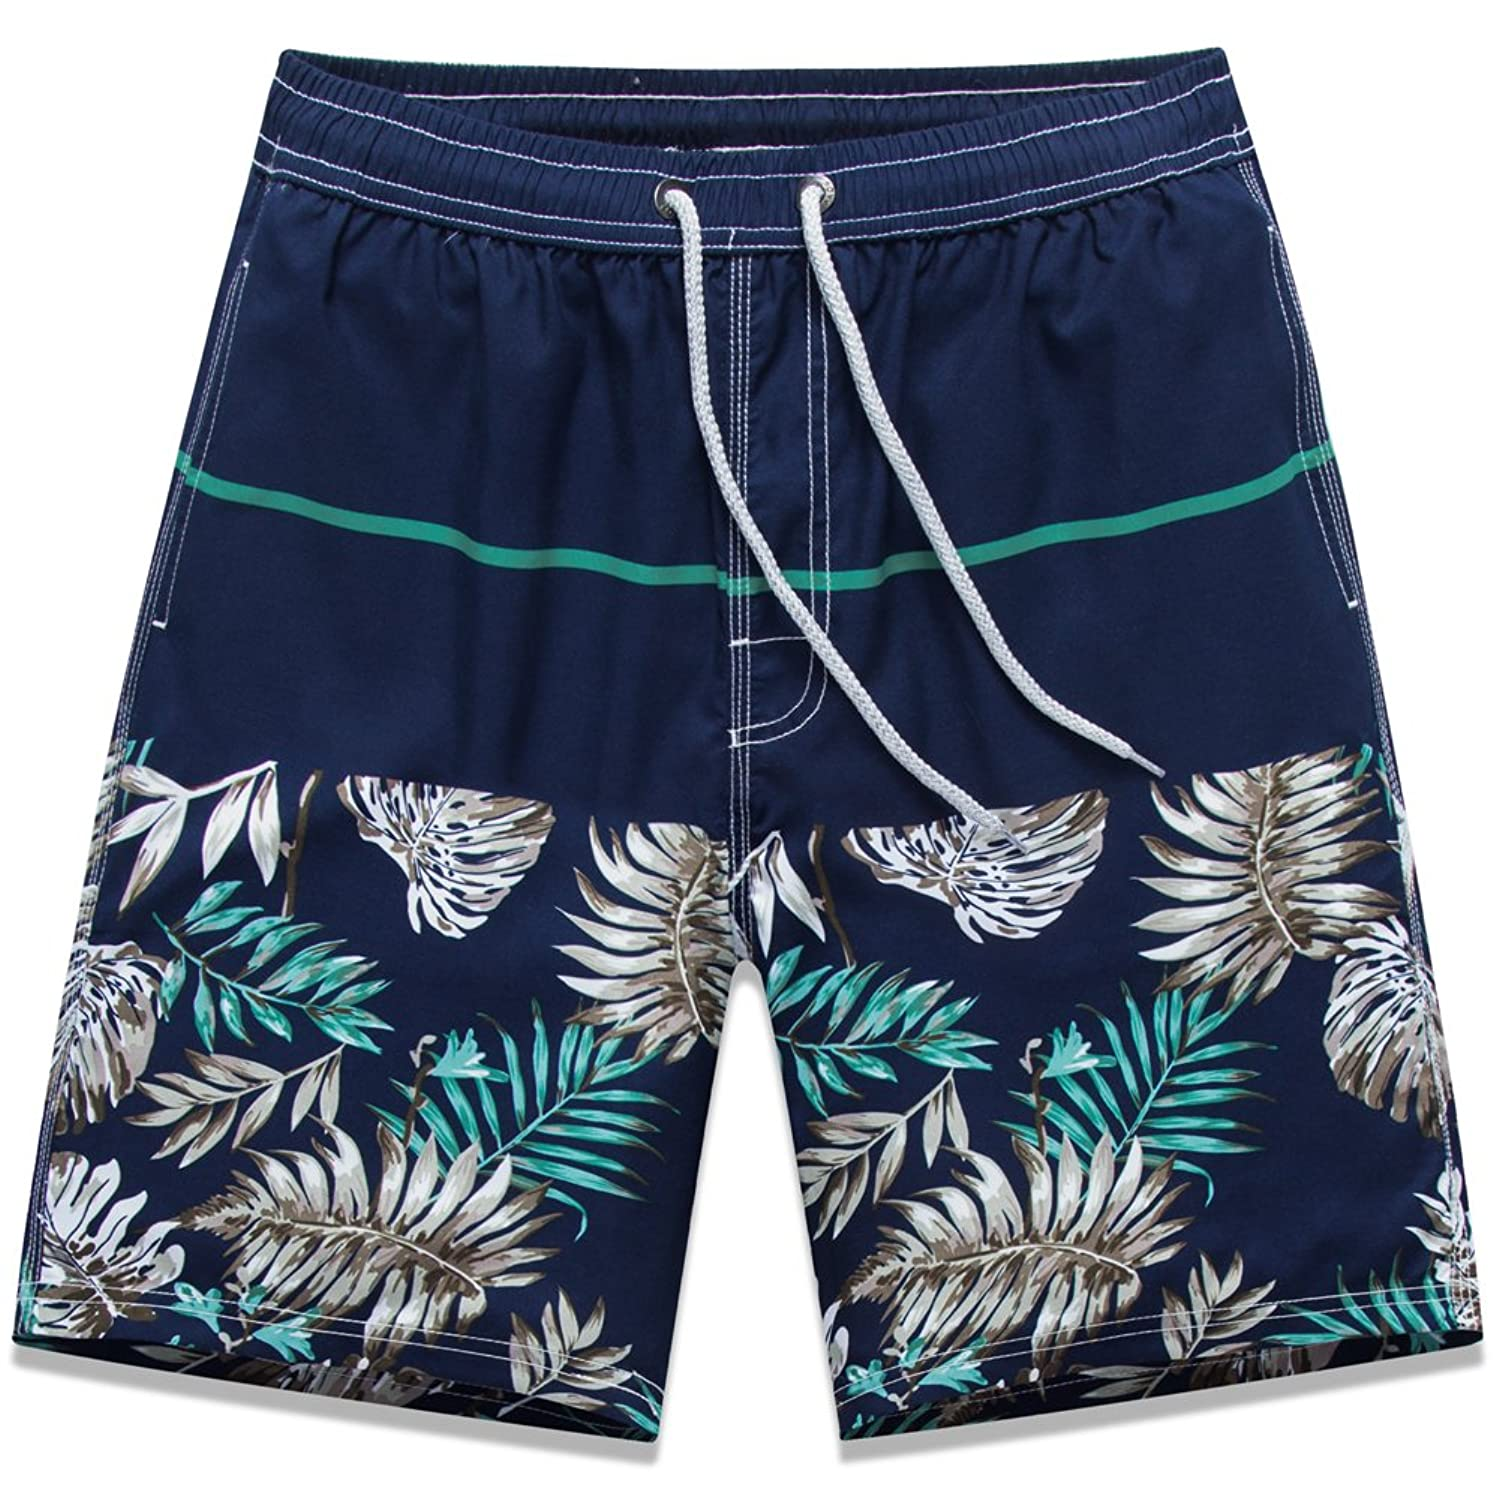 ALiberSoul Men's Quick-drying Boardshorts Tropical Design Swimming Trunks